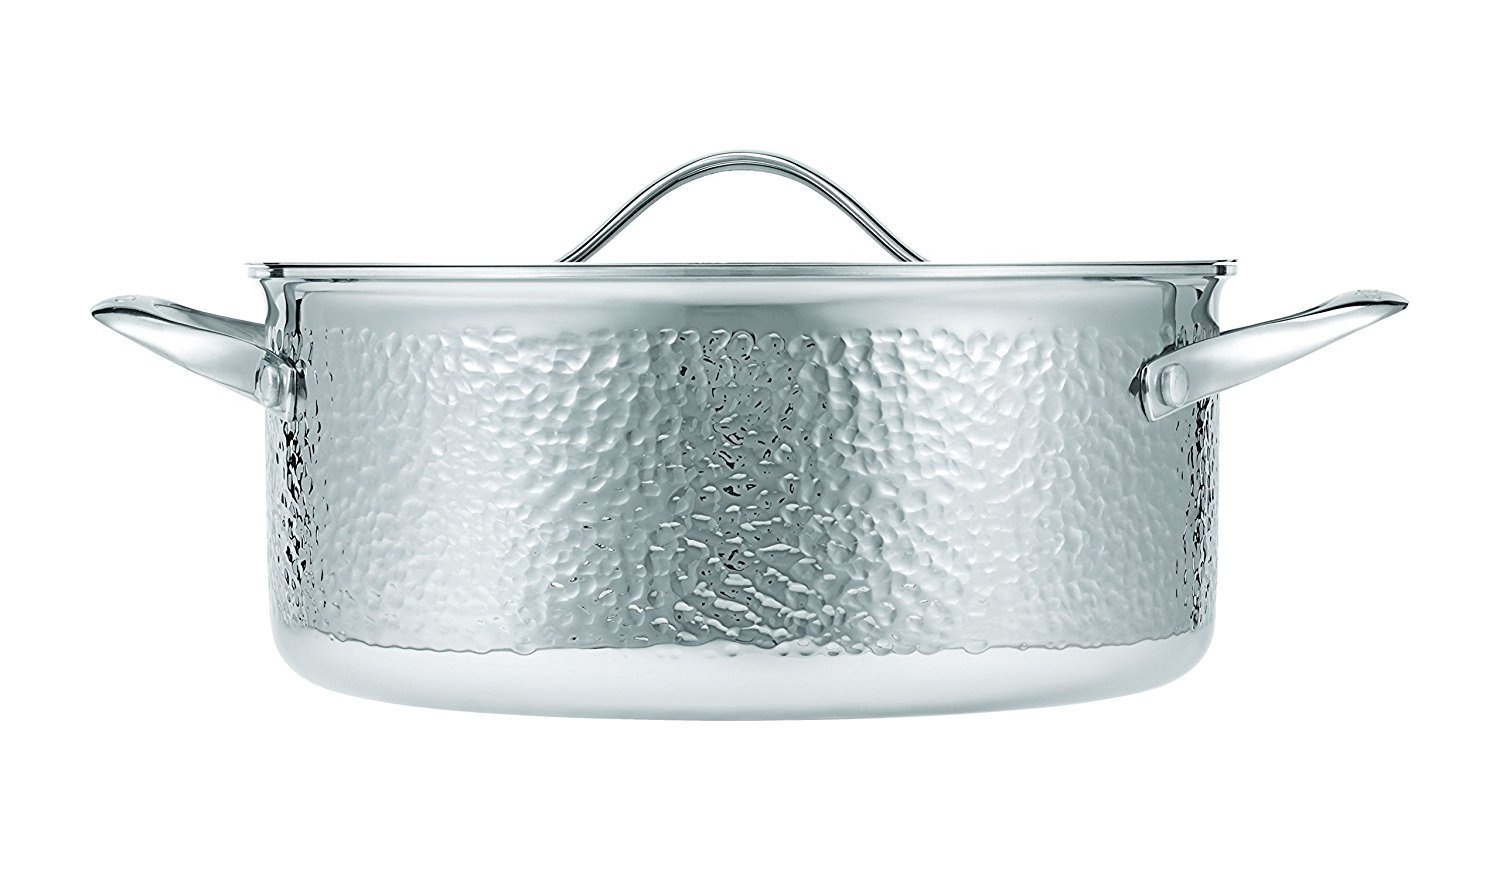 Tri Ply Cookware Kitchen Kitchen: Buy Online from Fishpond.co.nz